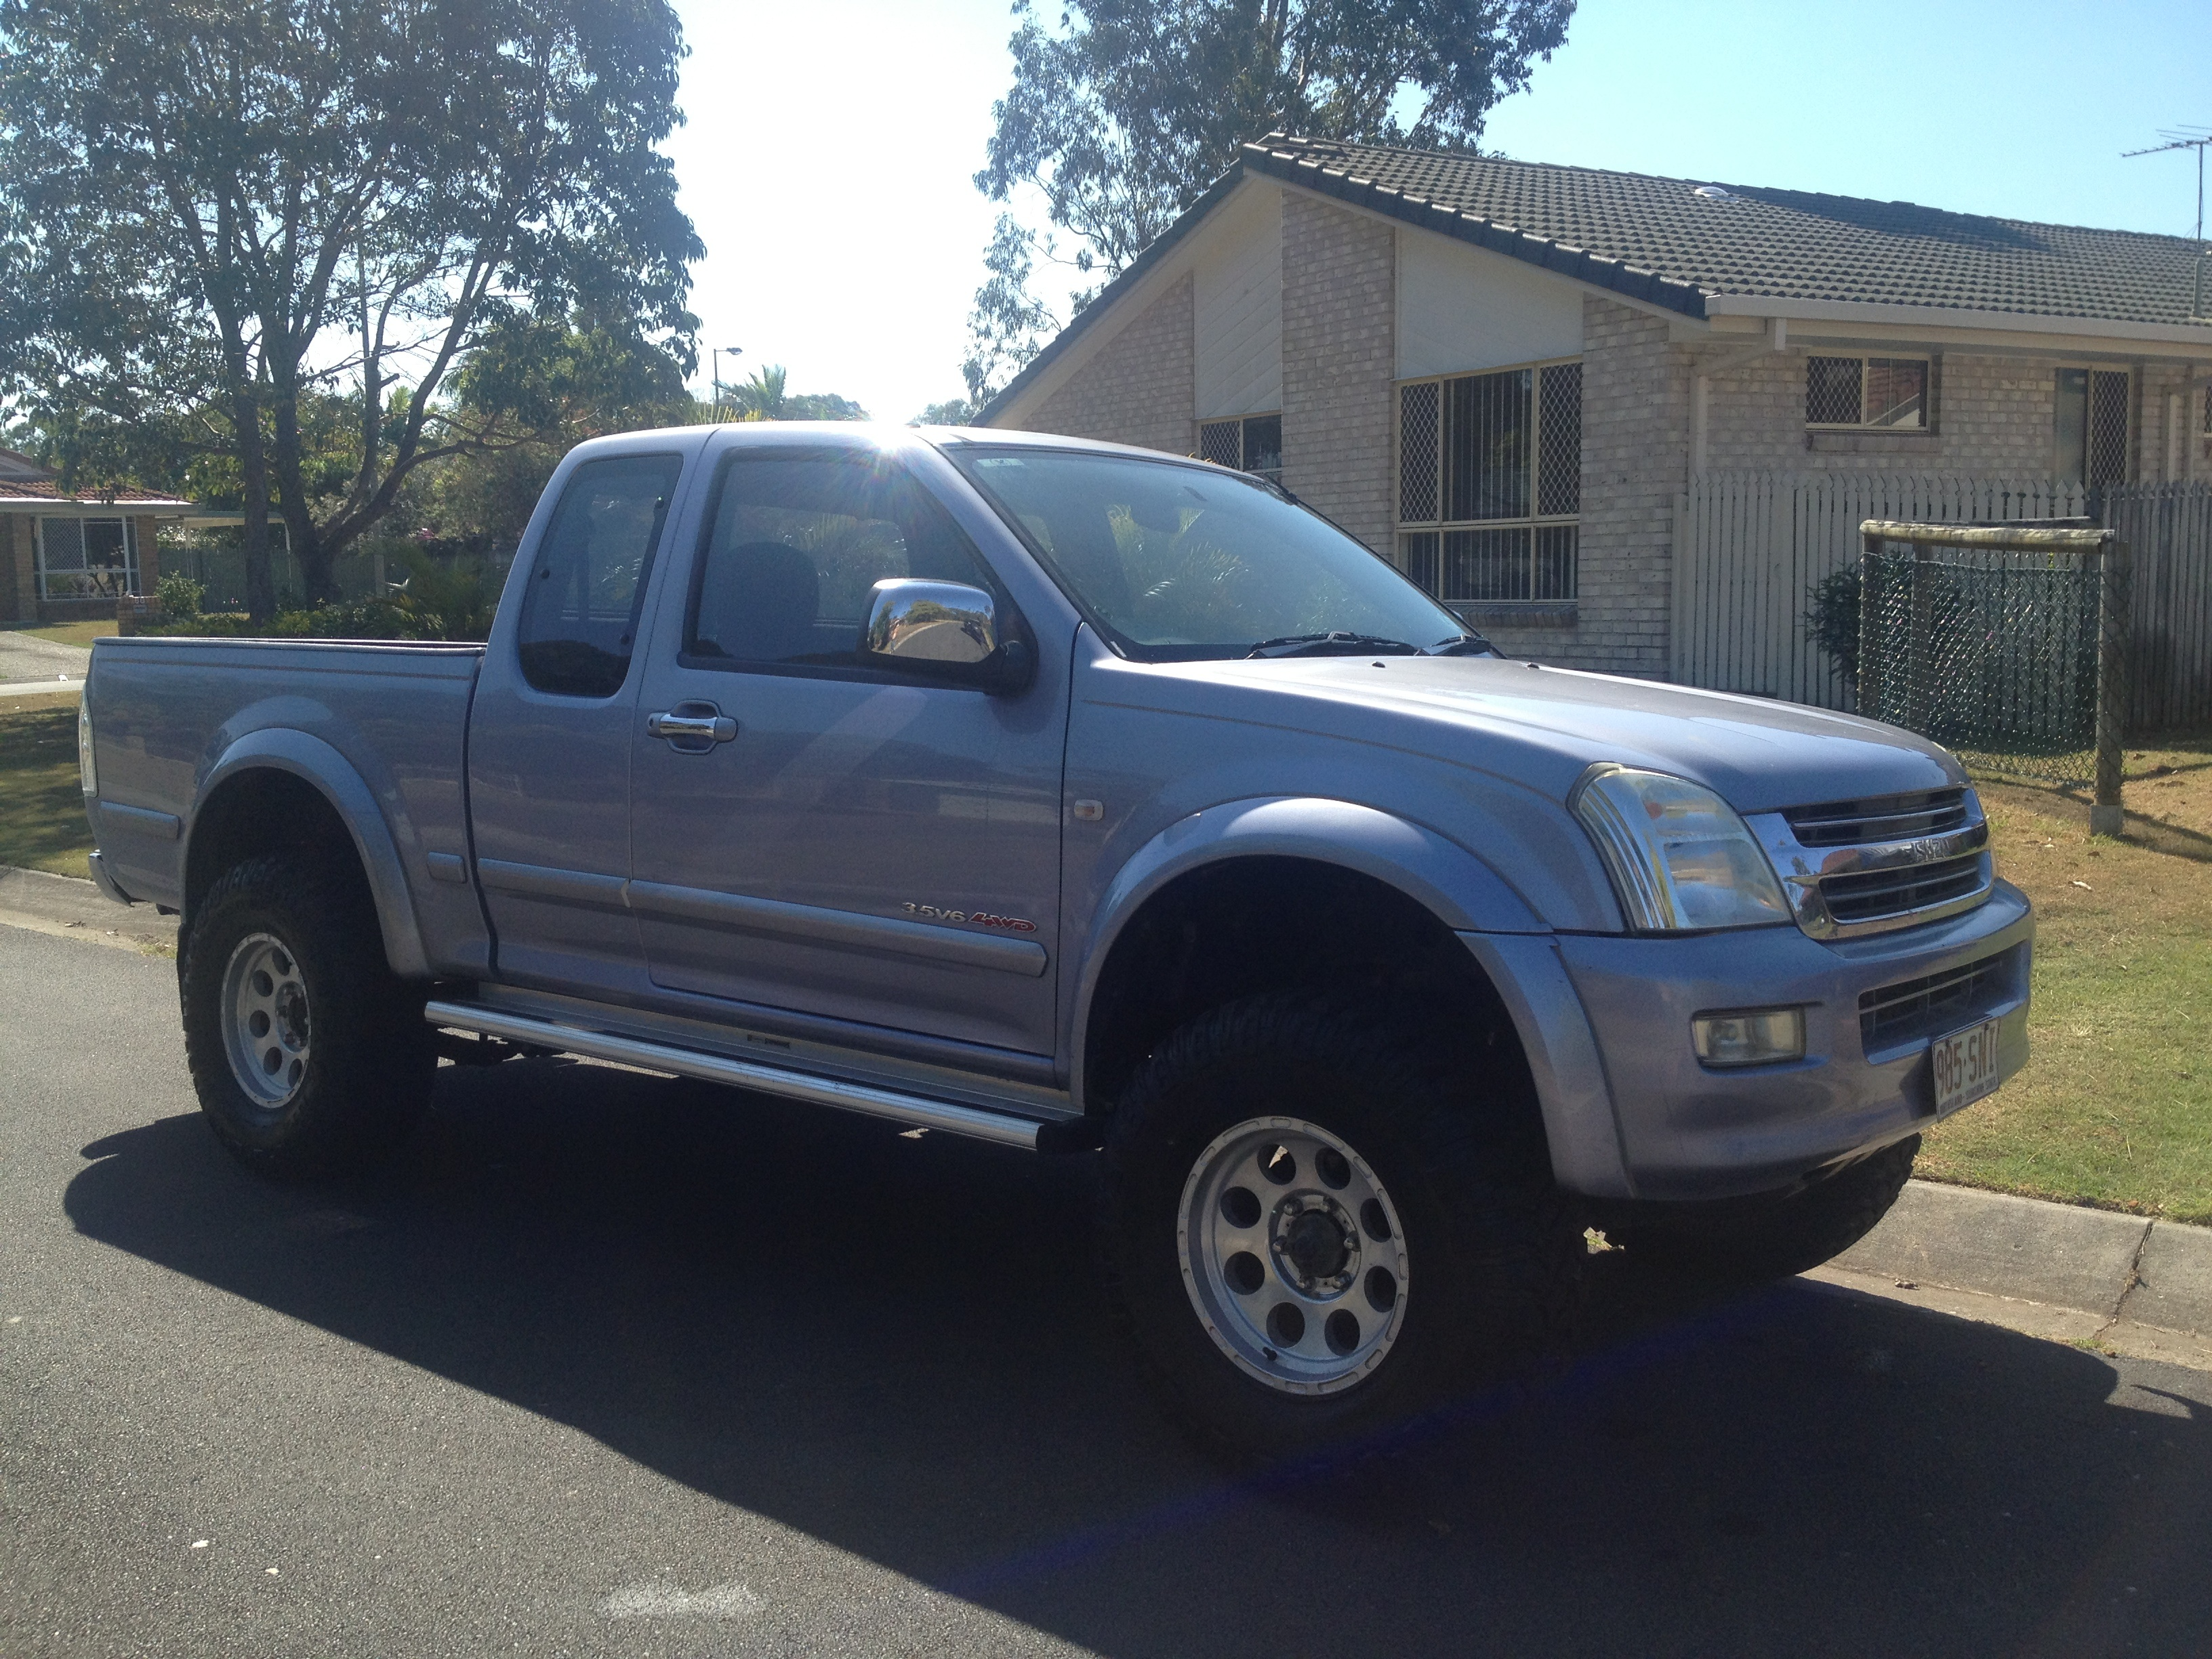 Images of Holden Rodeo Off Road 4x4